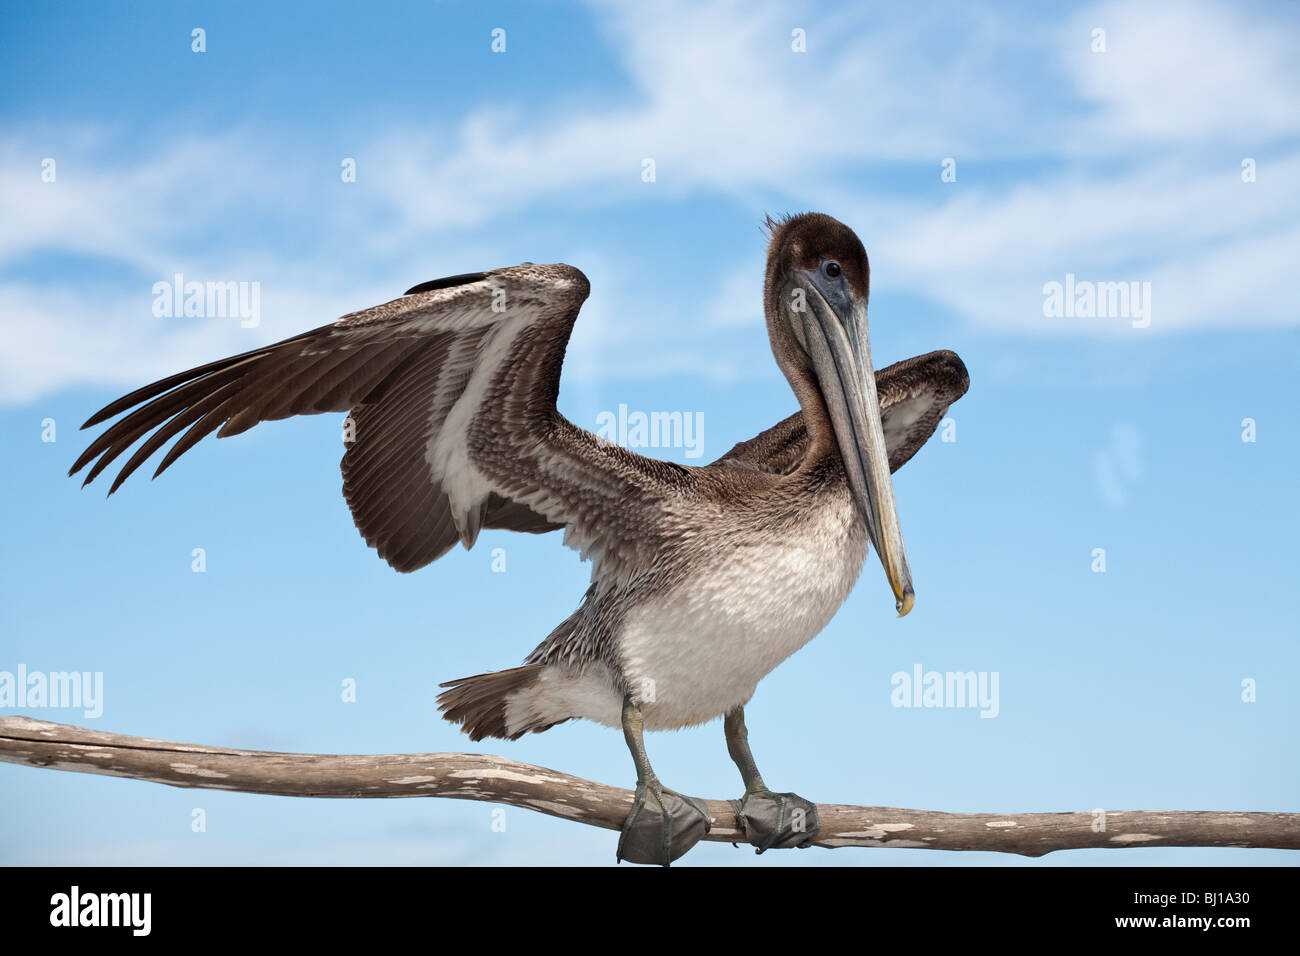 Immature Brown Pelican, ready for flight. A brown pelican with its wings partially extended welcomes visitors to - Stock Image